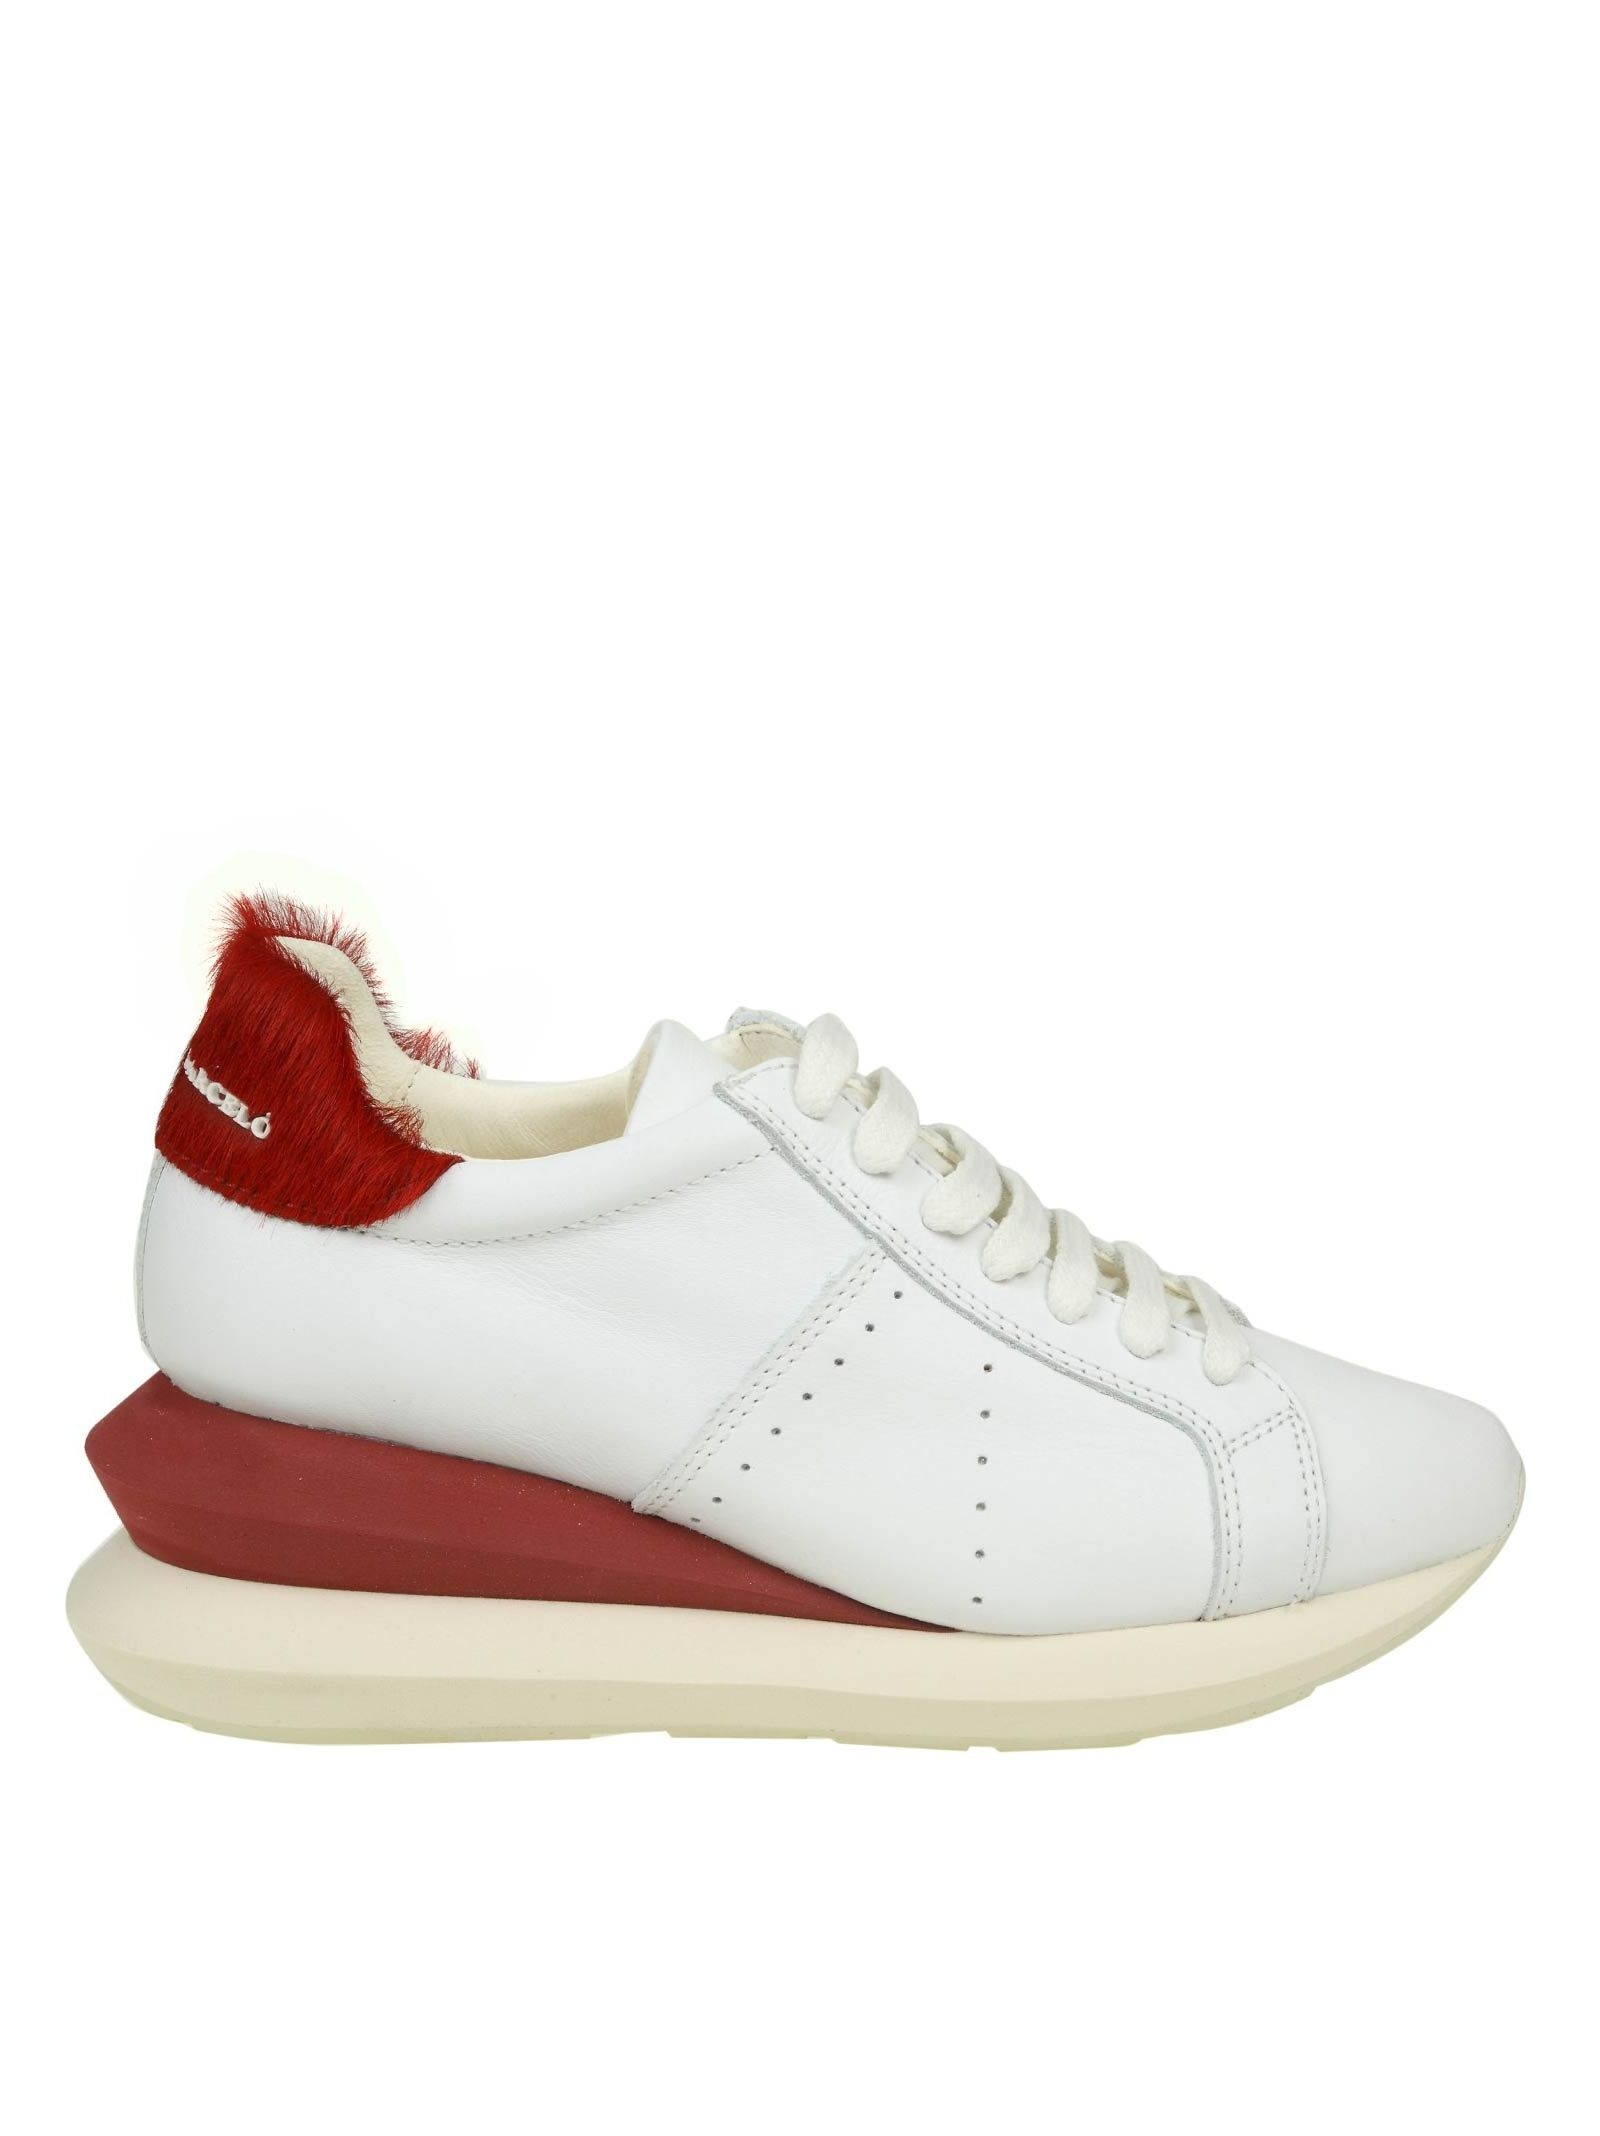 Manuel Barcelo' Sneakers Shoe In White Leather in White/Red